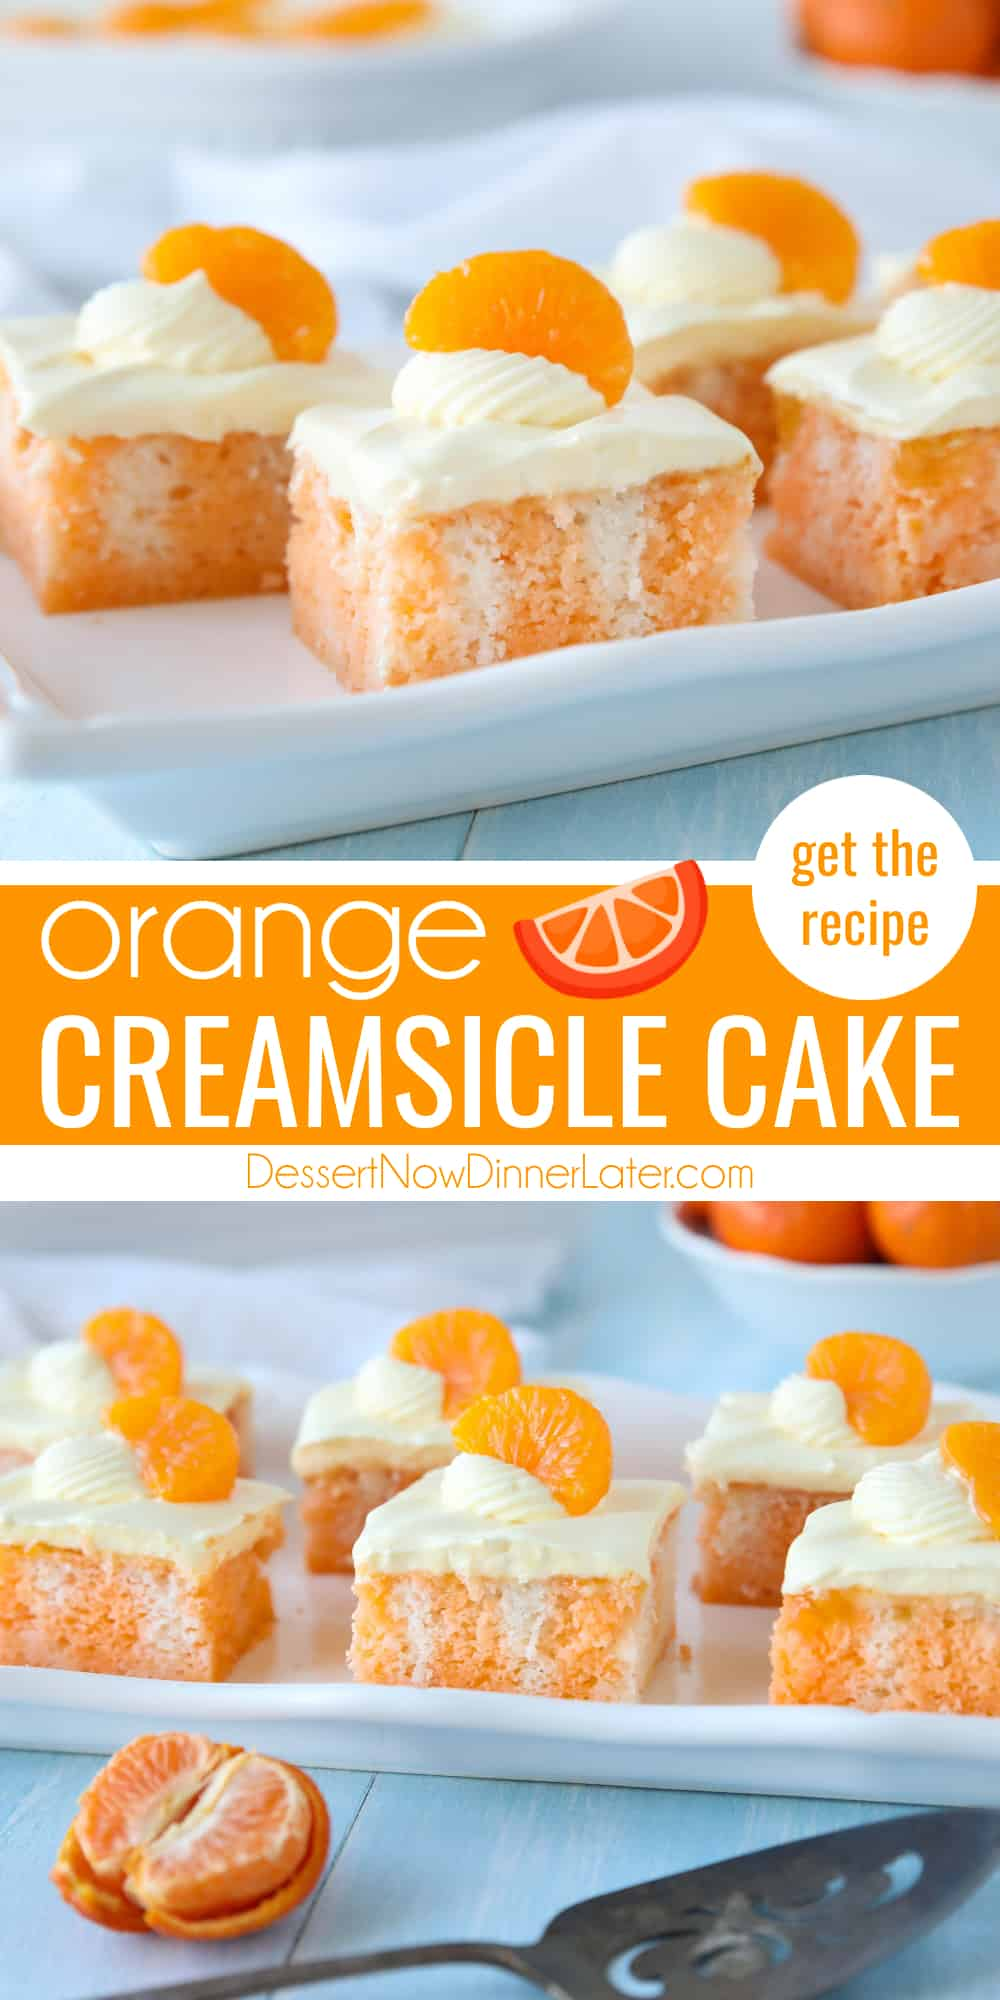 Pinterest collage image for Orange Creamsicle Cake with two images and text in the center.